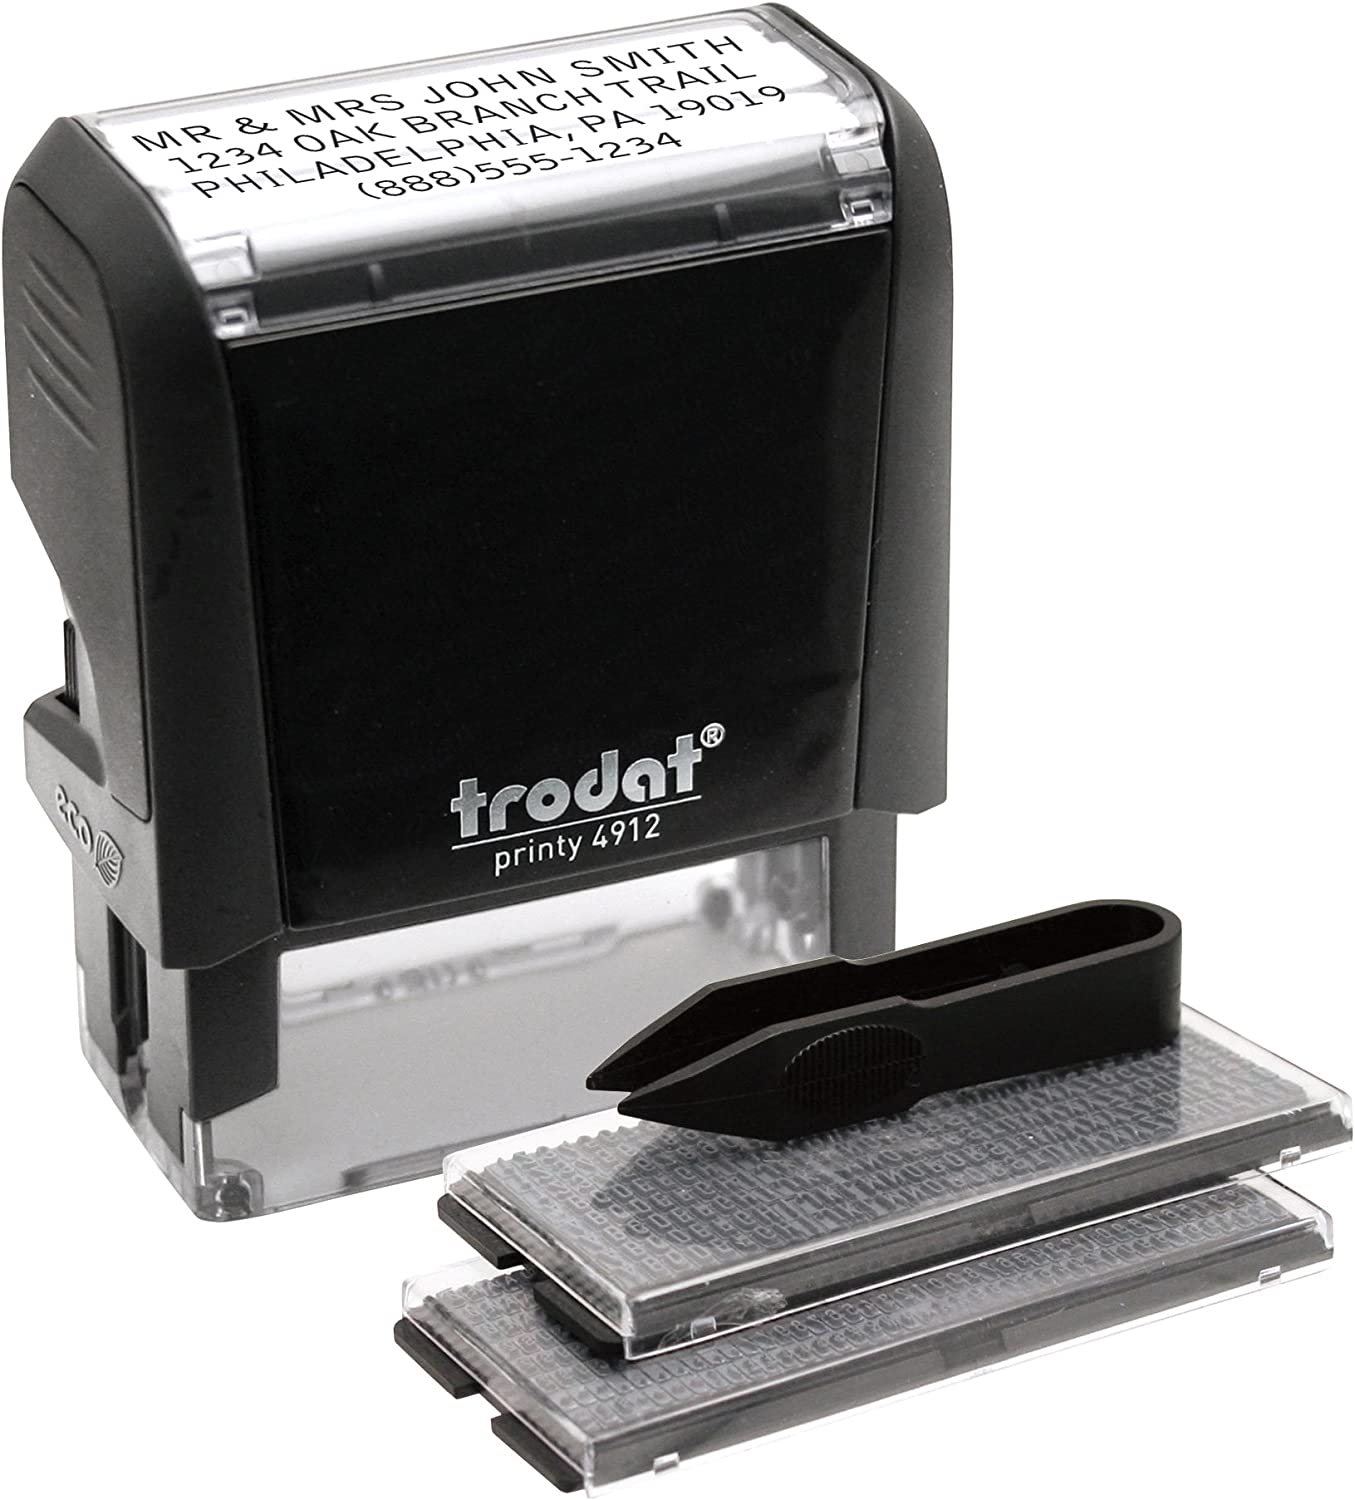 Trodat Printy Economy Self-Inking Do It Yourself, Customizable Message or Address Stamp, Impression Size: 3/4 x 1-7/8 Inches, Black (5915)